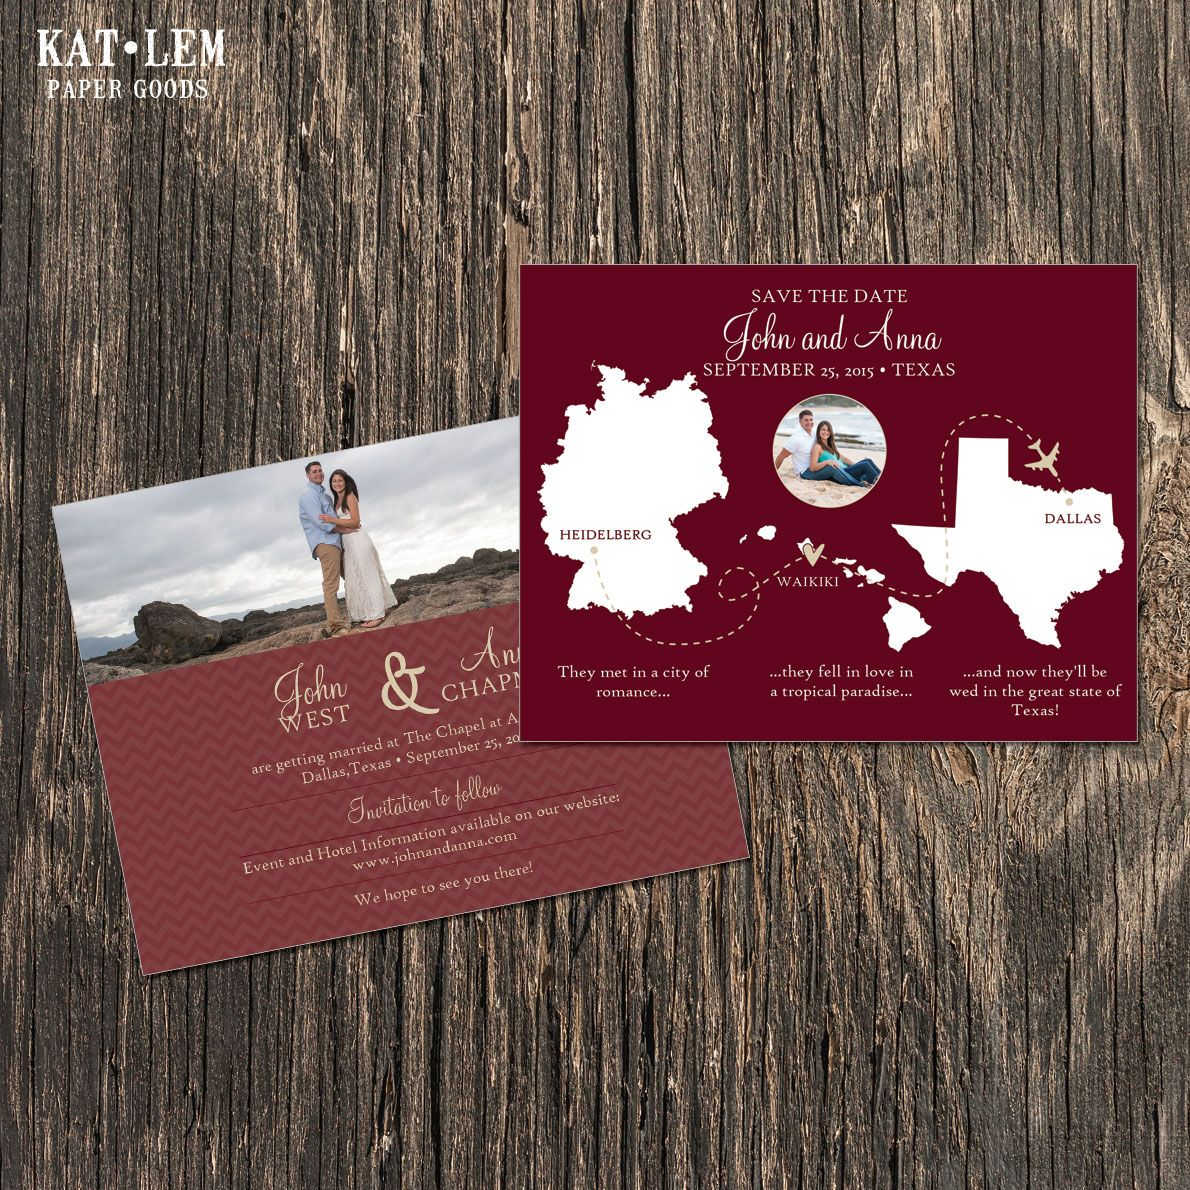 Multiple locations and maps save the date. Custom design for client ...